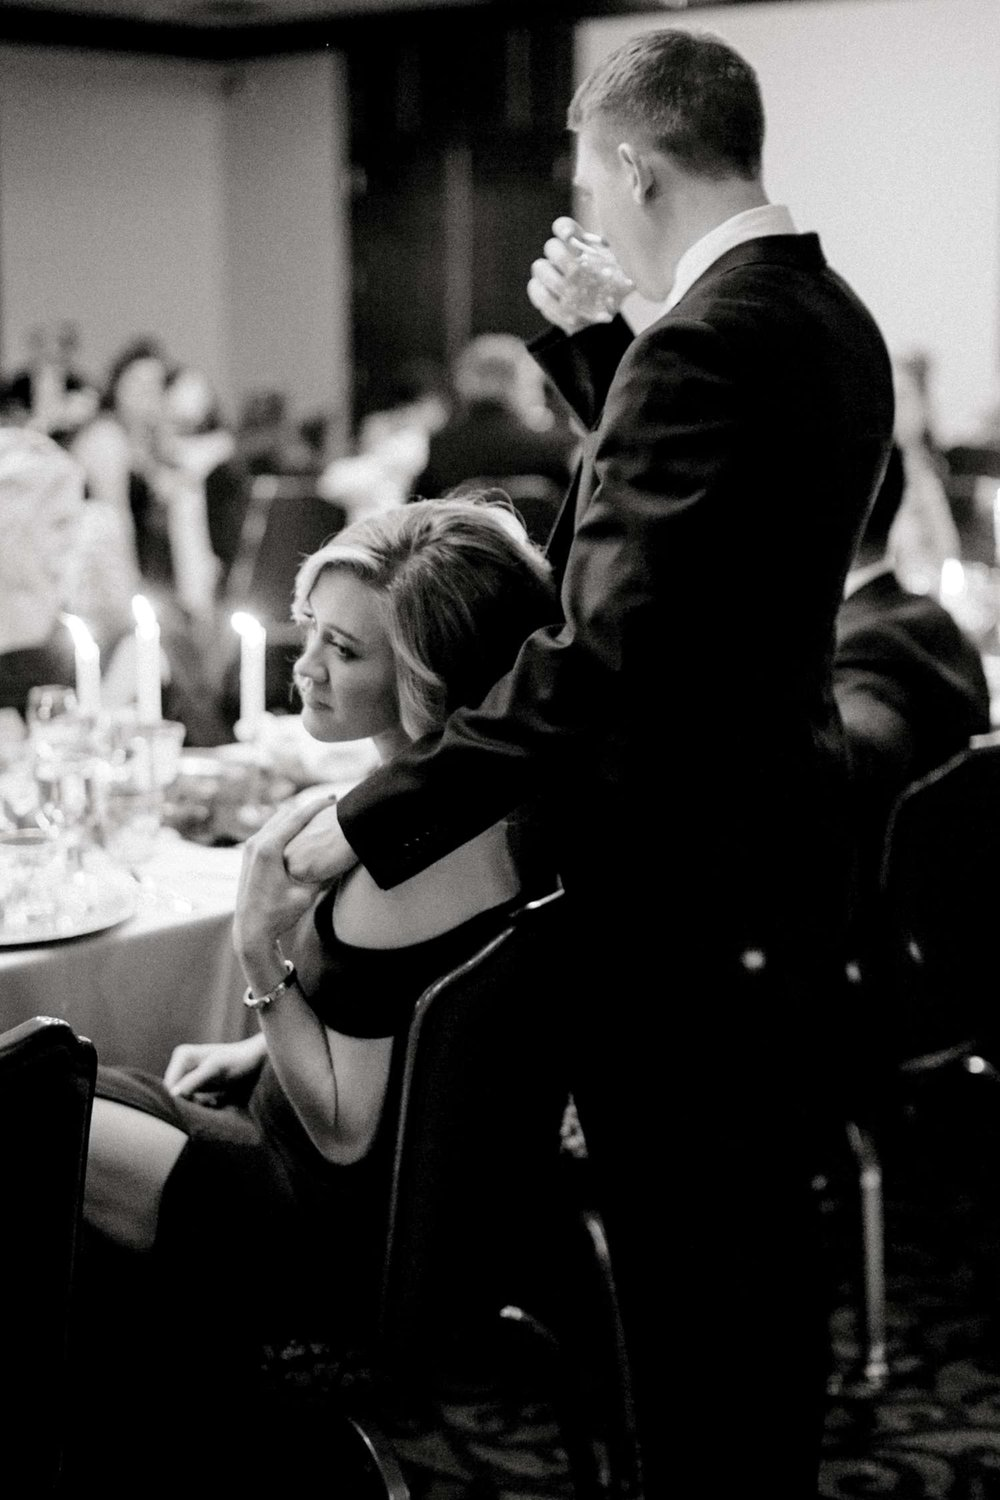 MARLEE+LLOYD+MORGAN+ALLEEJ+TEXAS+TECH+MERKET+ALUMNI+WEDDINGS+LUBBOCK+WEST+TABLE+CLASSIC+SPAIN_0205.jpg